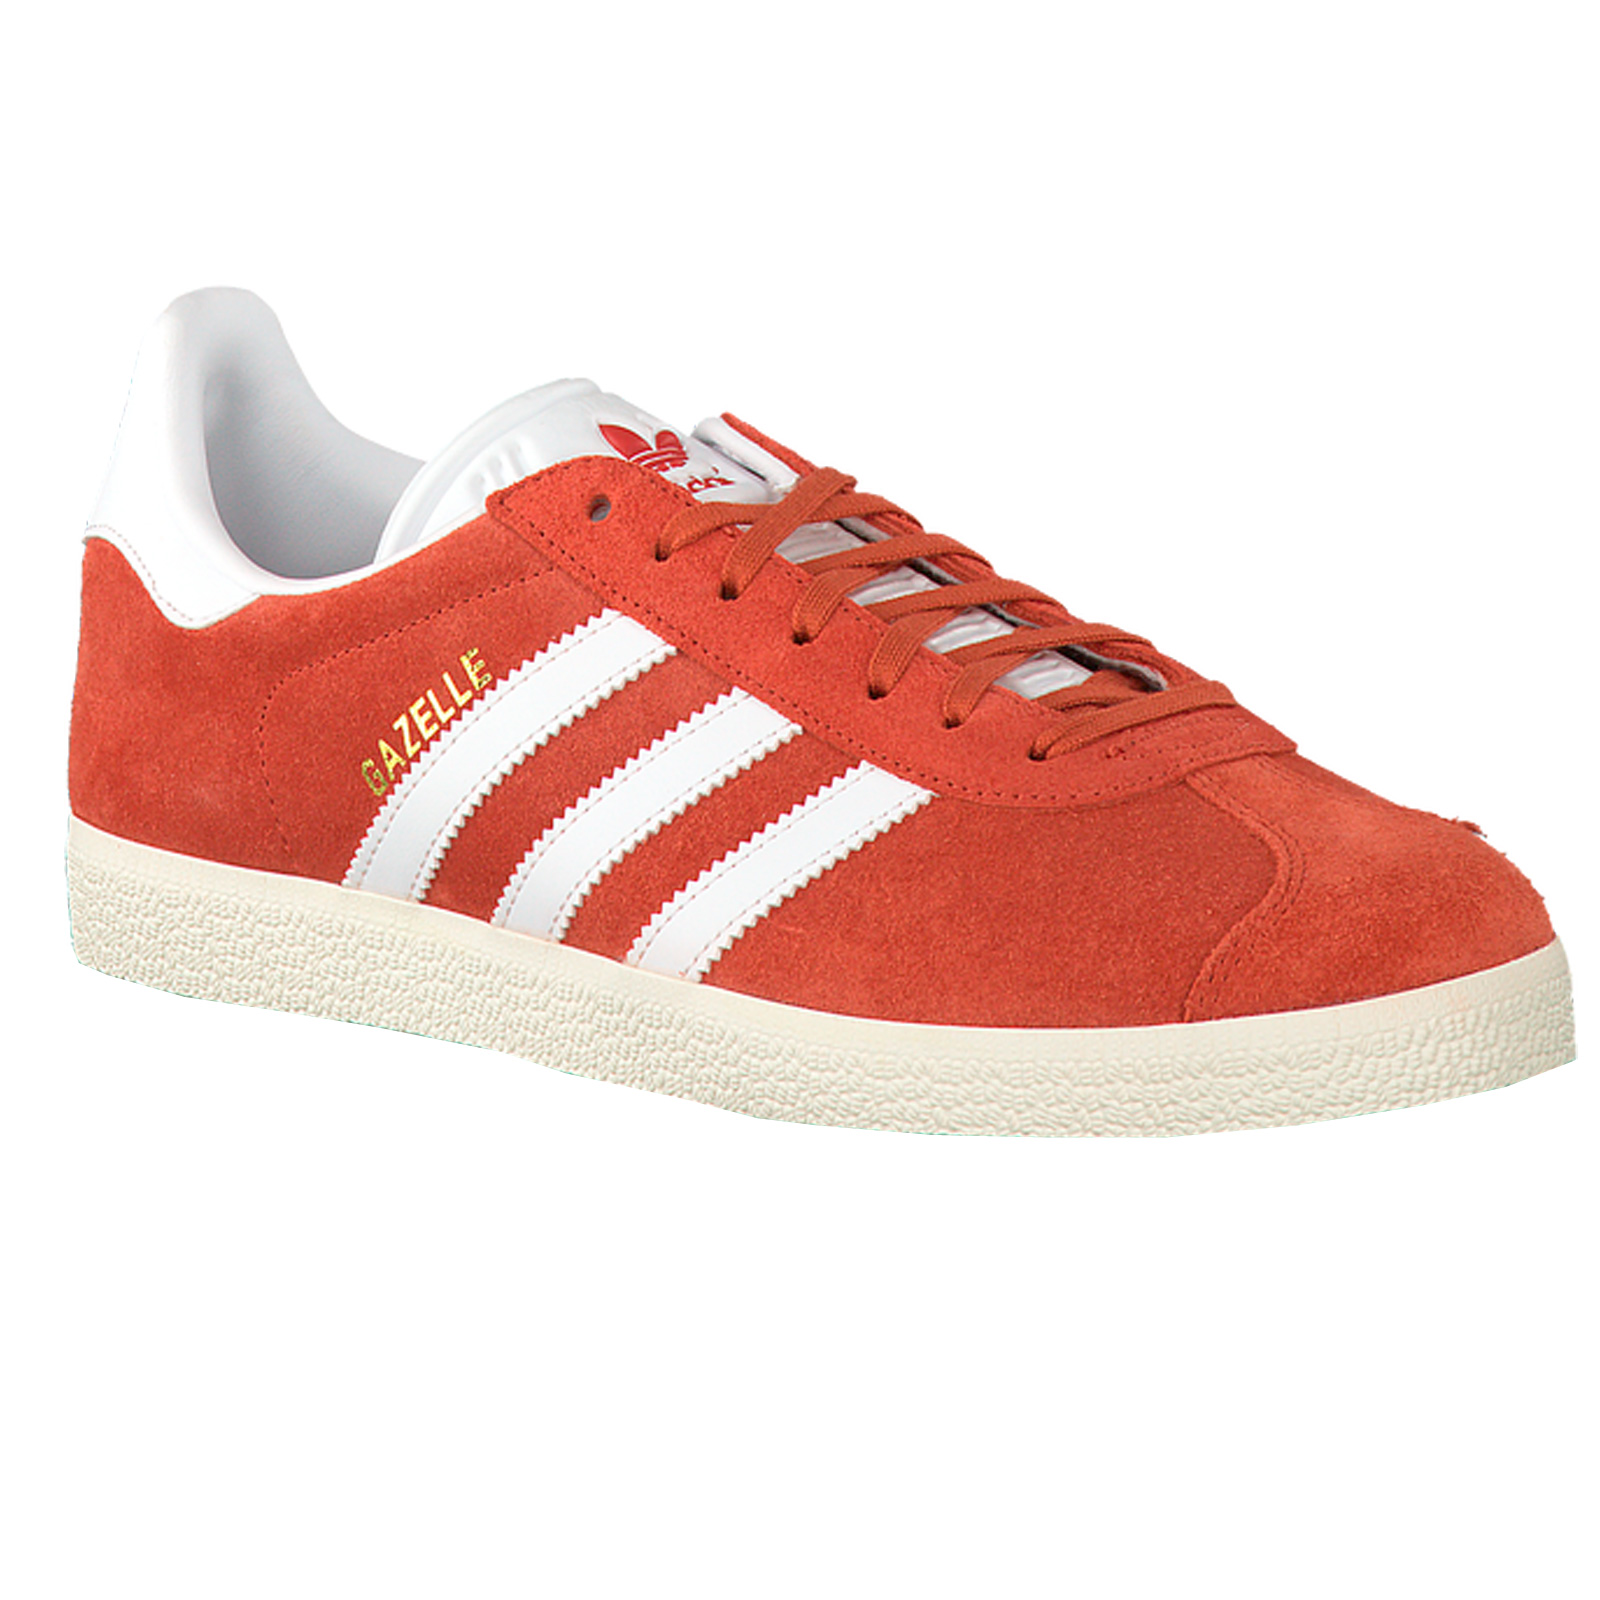 adidas Originals Gazelle Damen Sneaker Turnschuhe Future Harvest Orange Rot